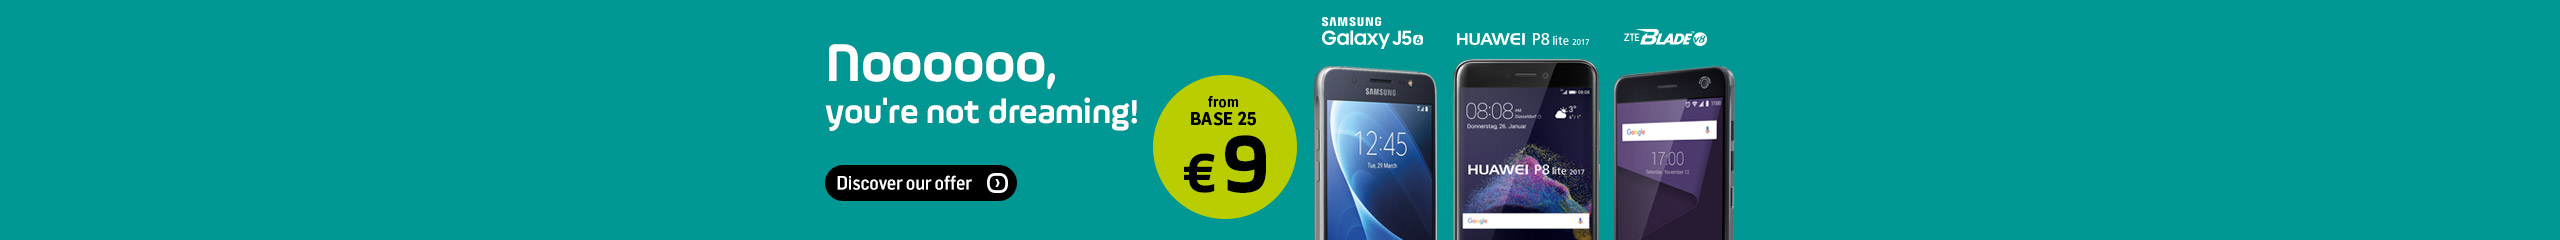 Smartphones from € 9 - BASE promotion